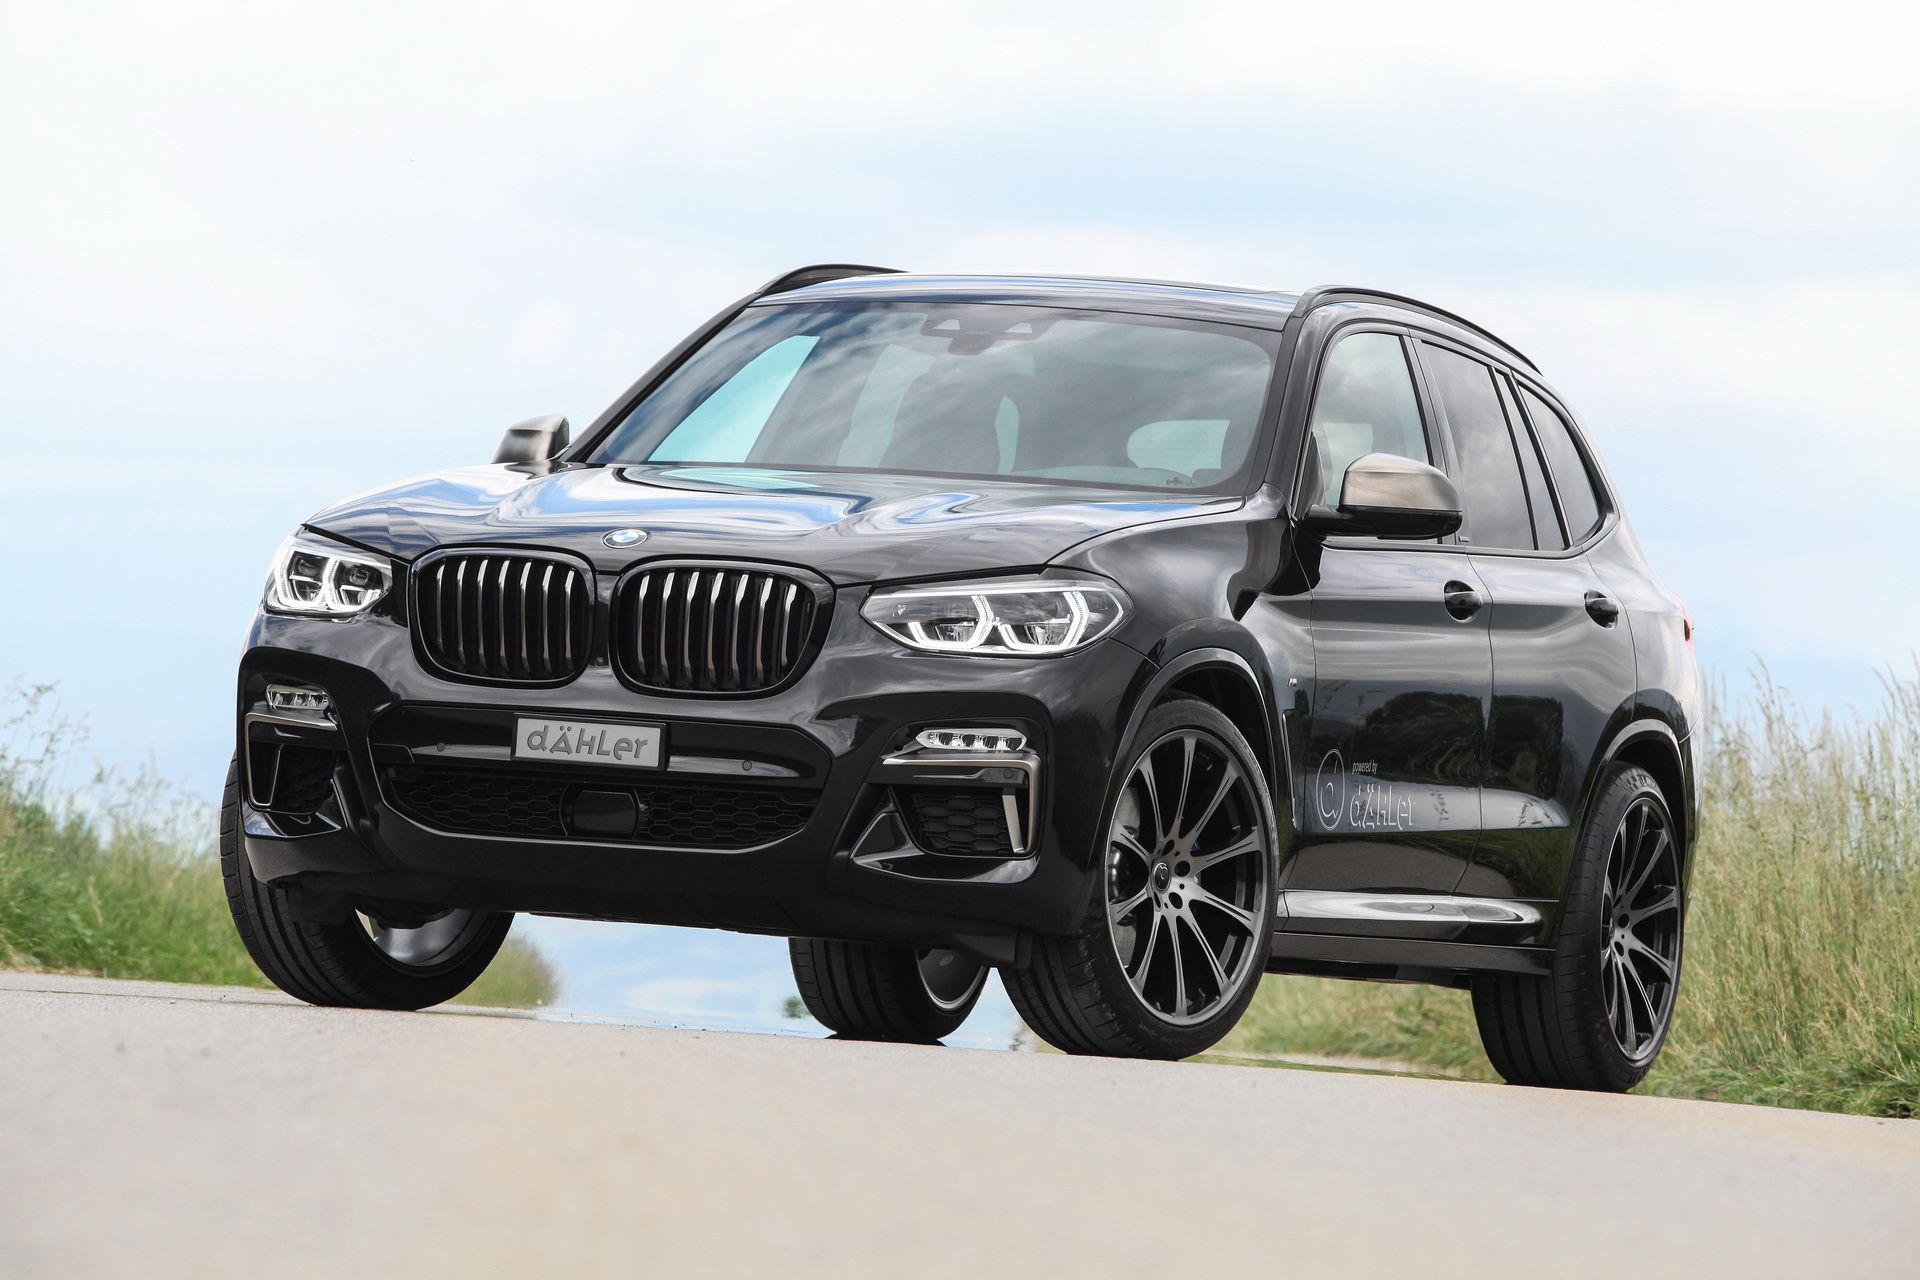 BMW_X3_M40i_by_Dahler_0017